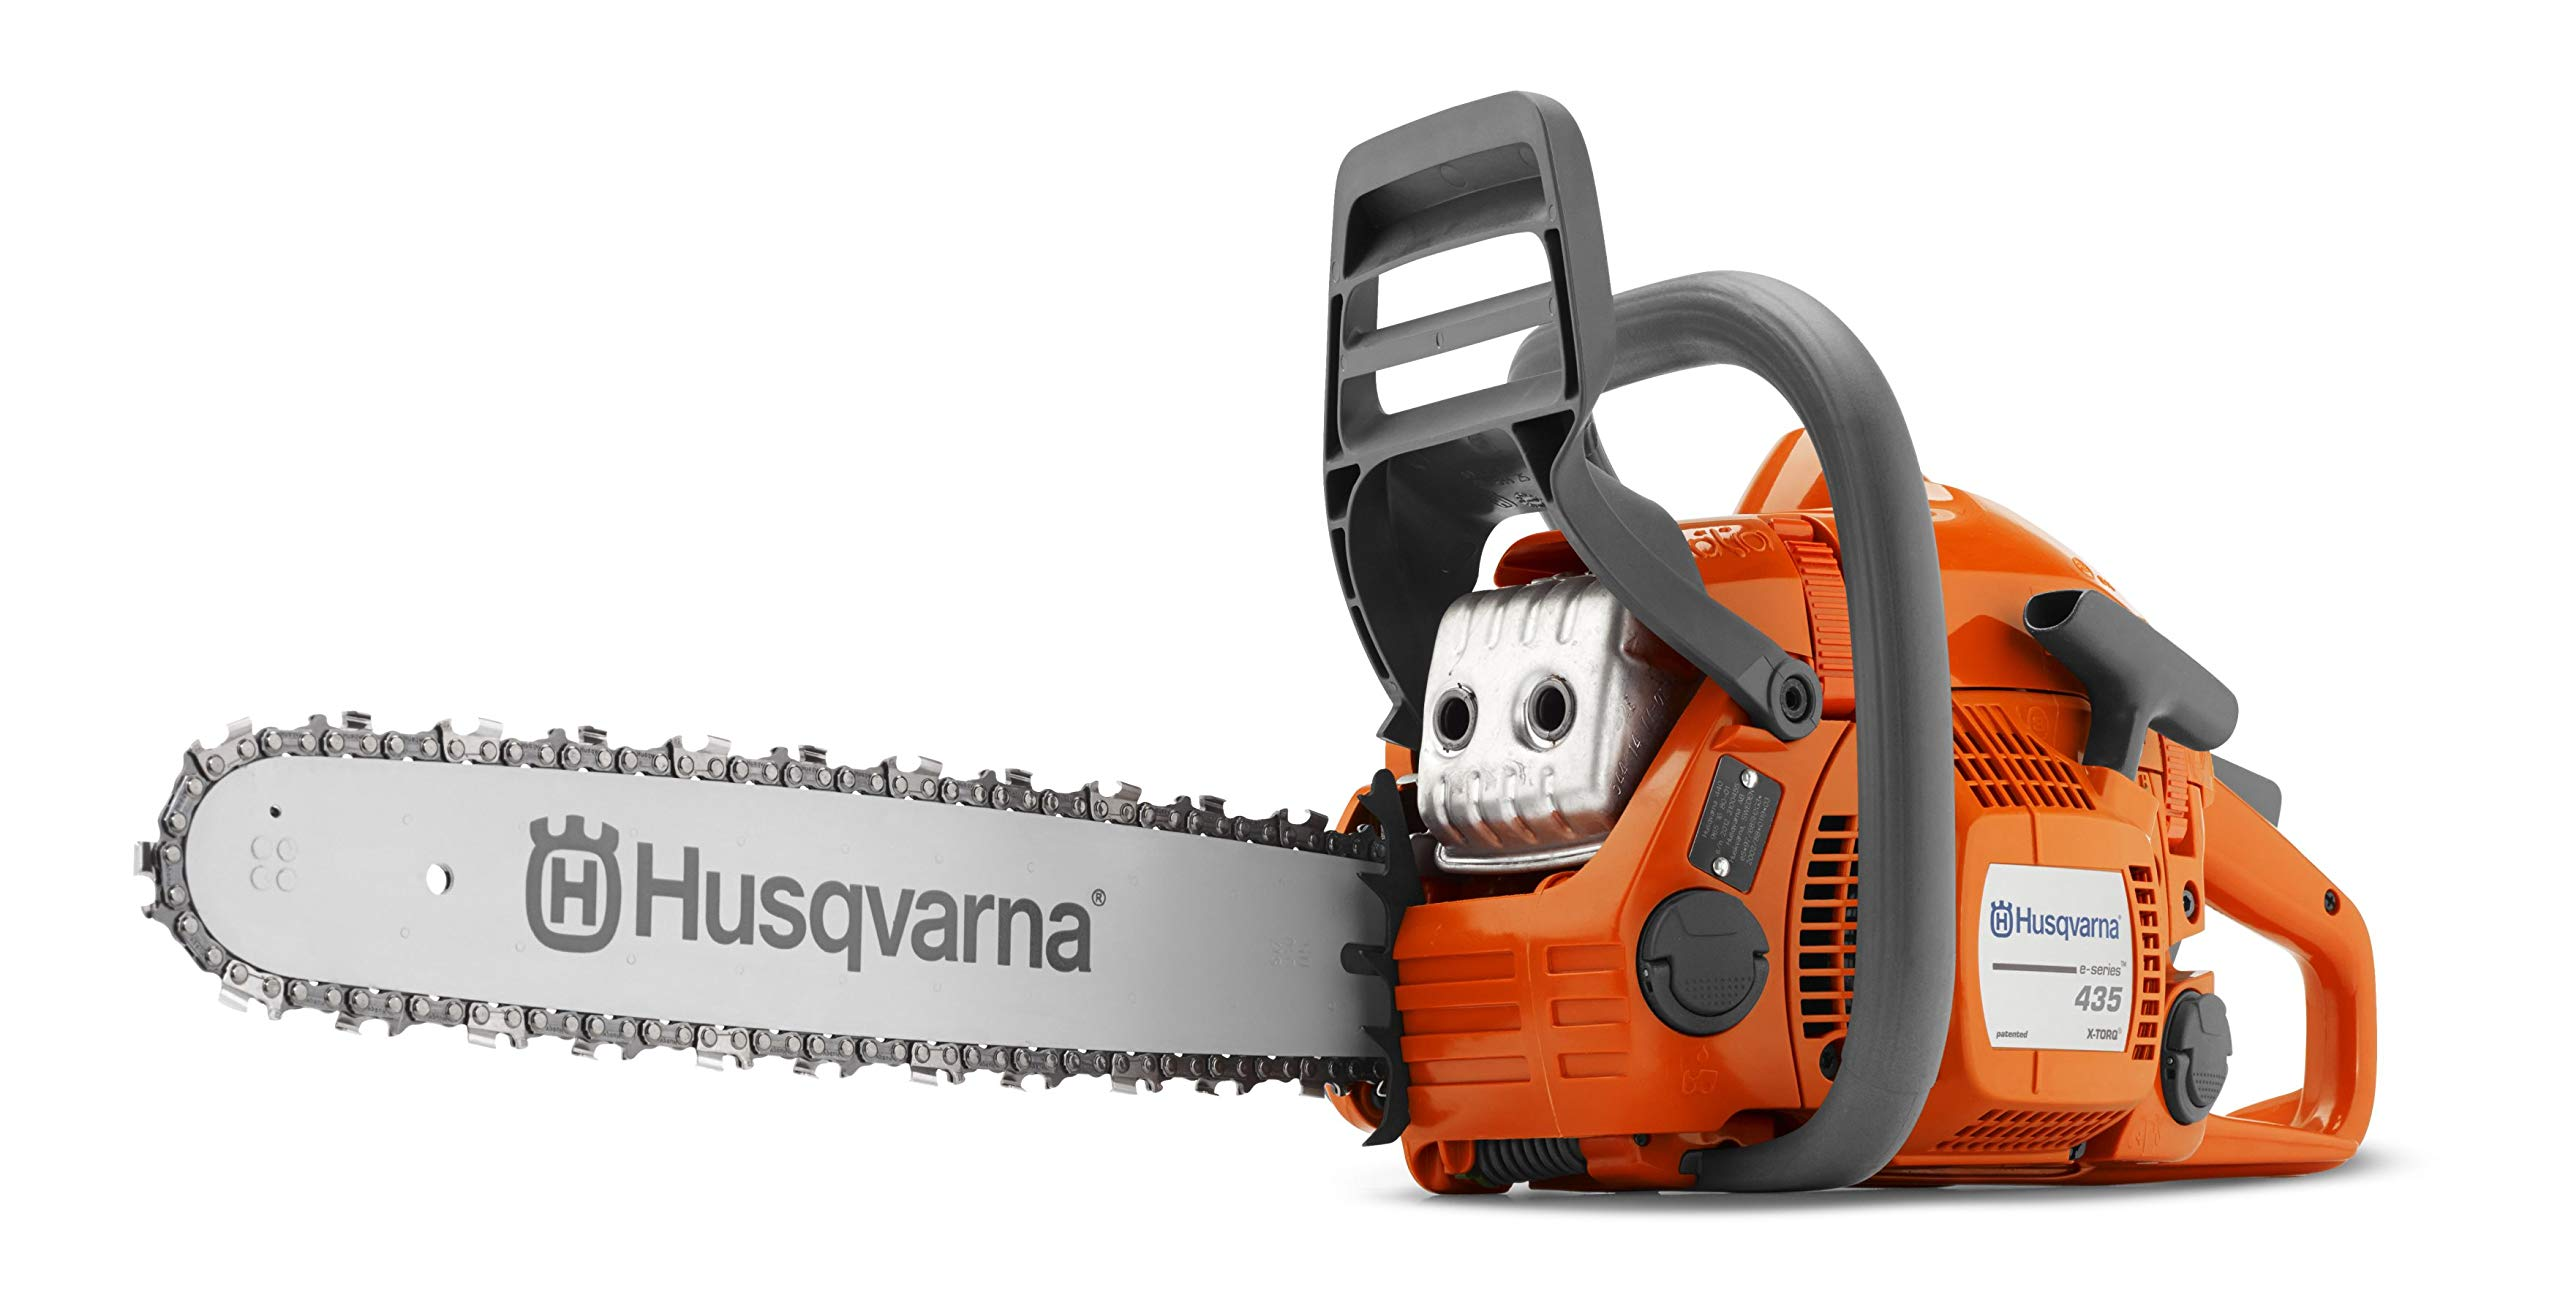 HUSQVARNA 435 16in 40.9cc 2.2hp Gas Powered Chainsaw (Renewed)